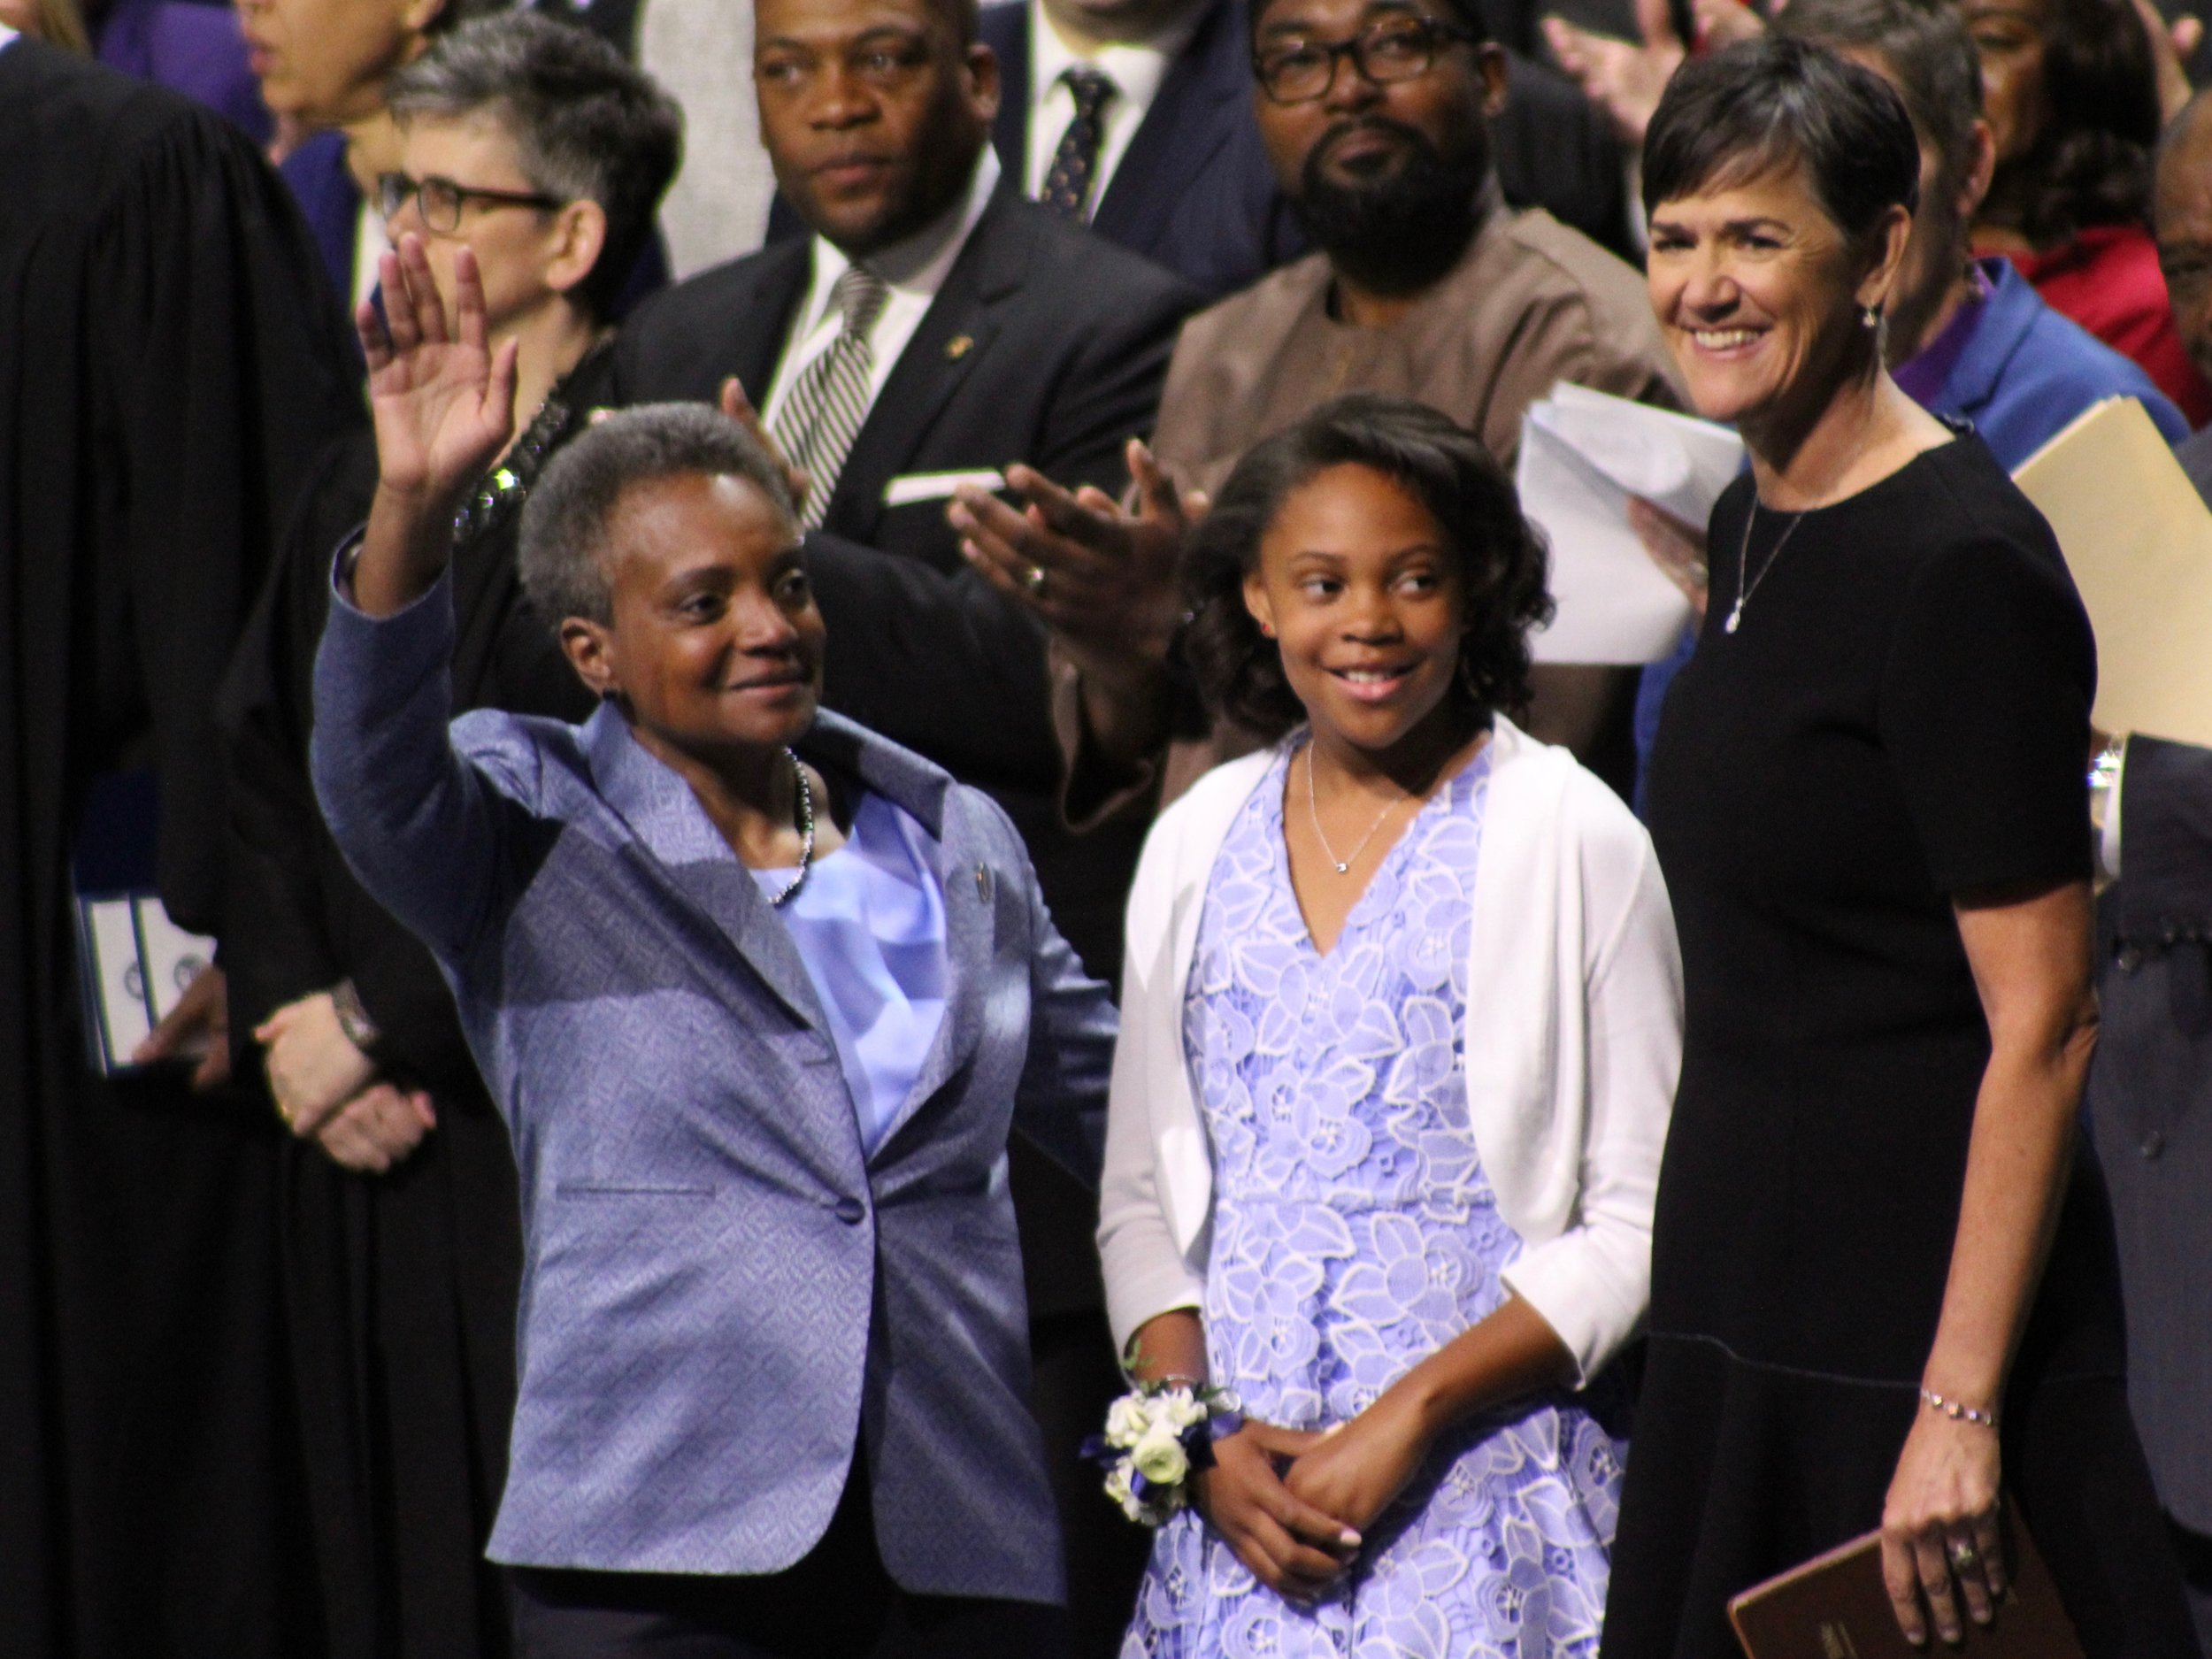 Chicago's new first family: Mayor Lightfoot and her wife, Amy Eshleman, greet the crowd along with their daughter, Vivian. (One Illinois/Ted Cox)